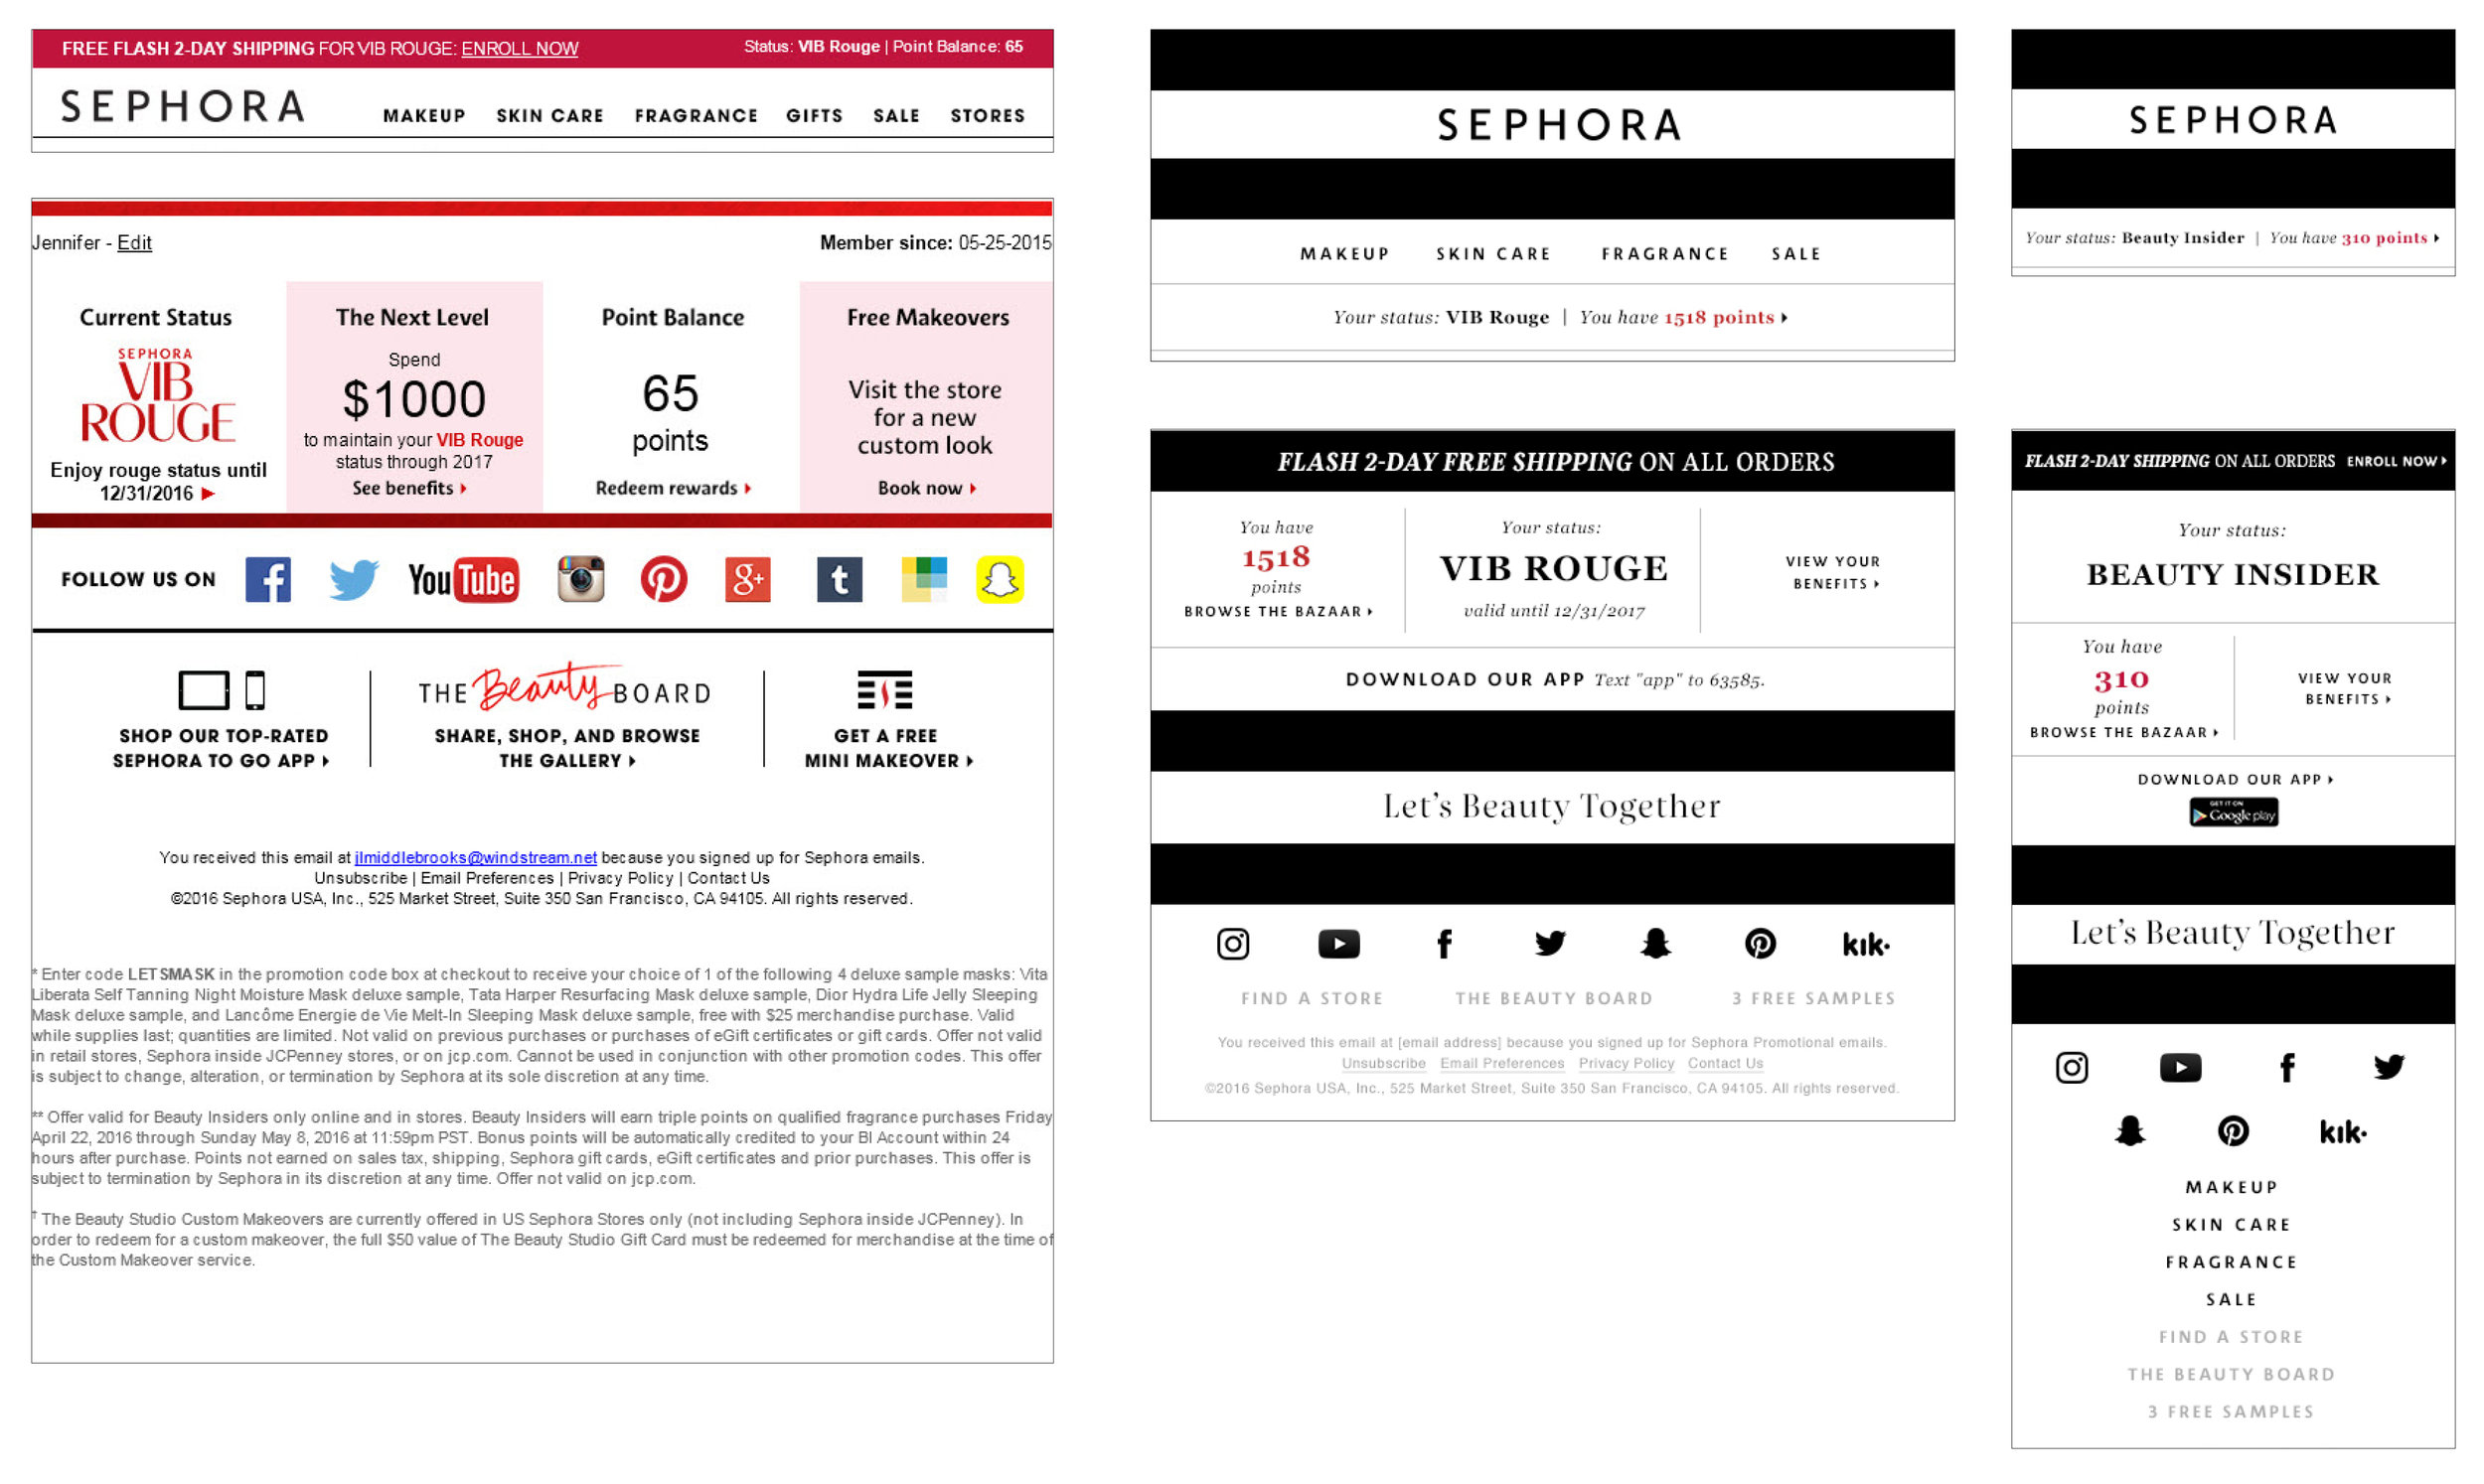 Email-template-case-study-H.jpg